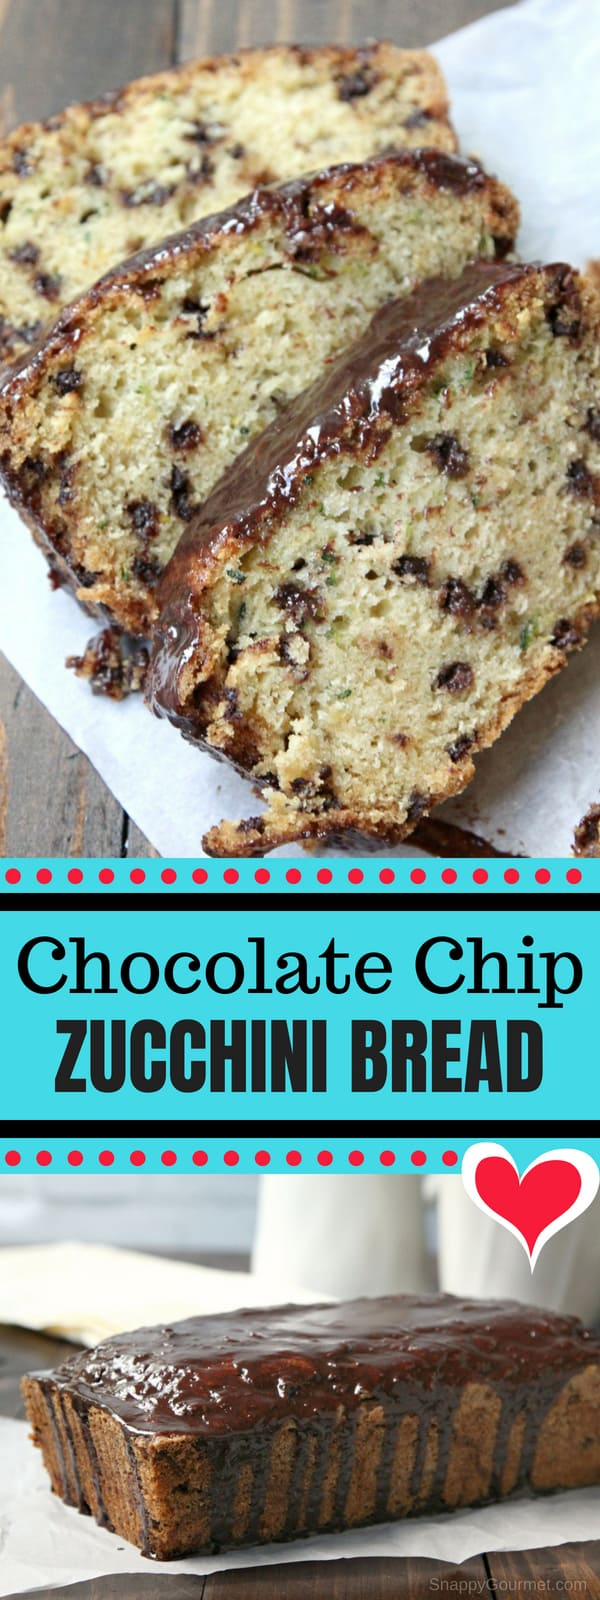 Chocolate Chip Zucchini Bread - easy zucchini bread from scratch with chocolate chips and chocolate glaze